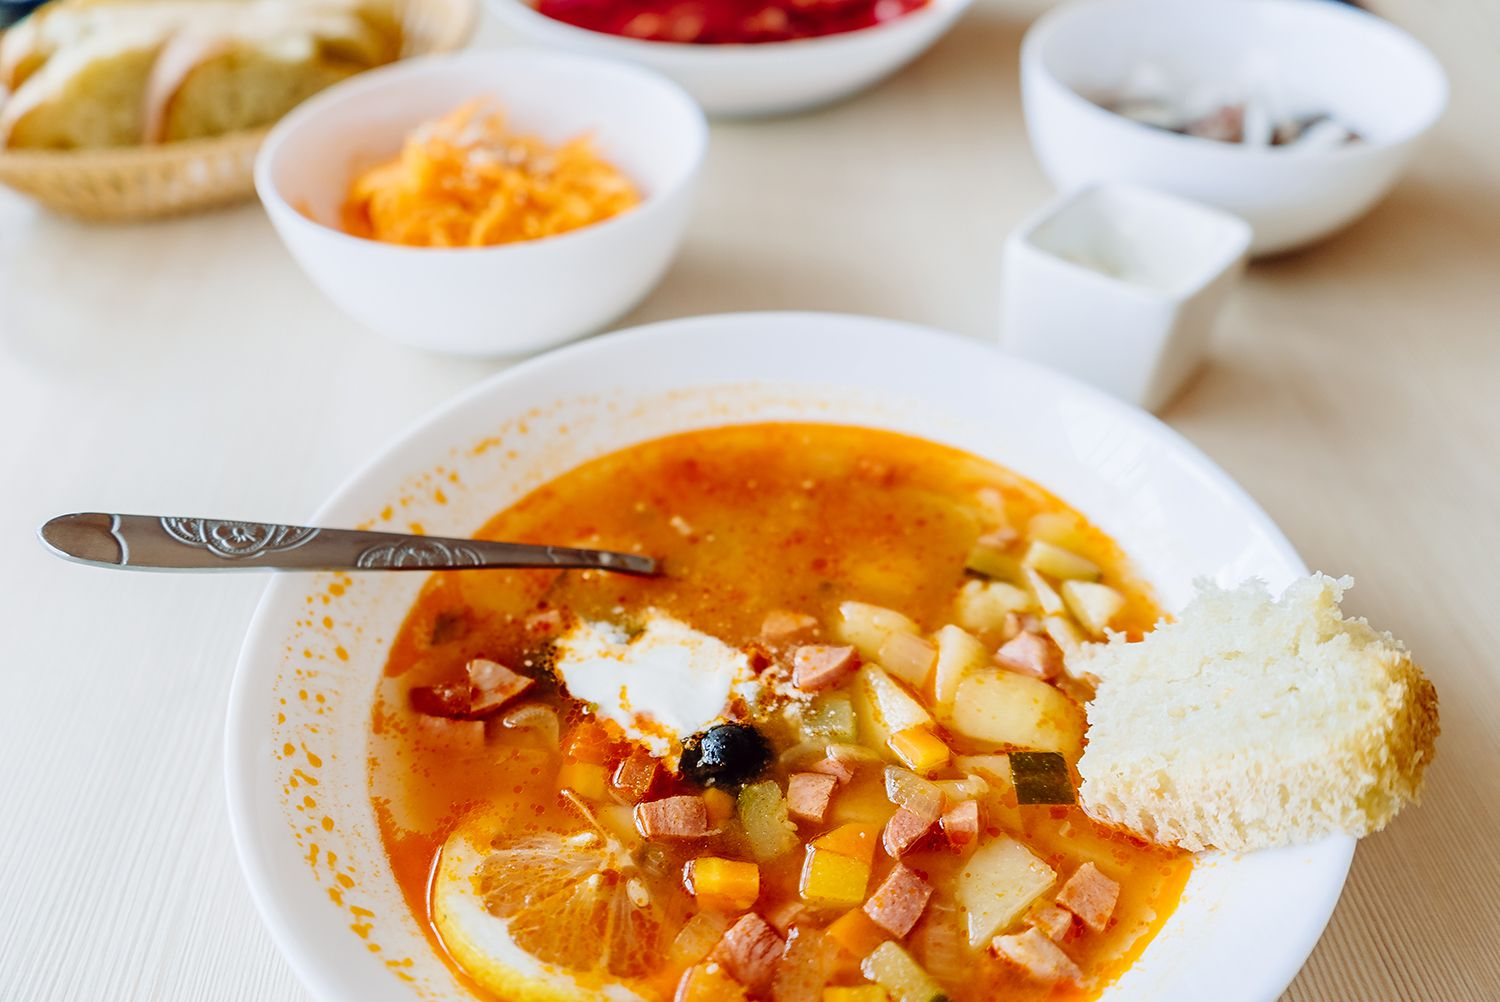 Russian food: Solyanka - spicy and sour soup